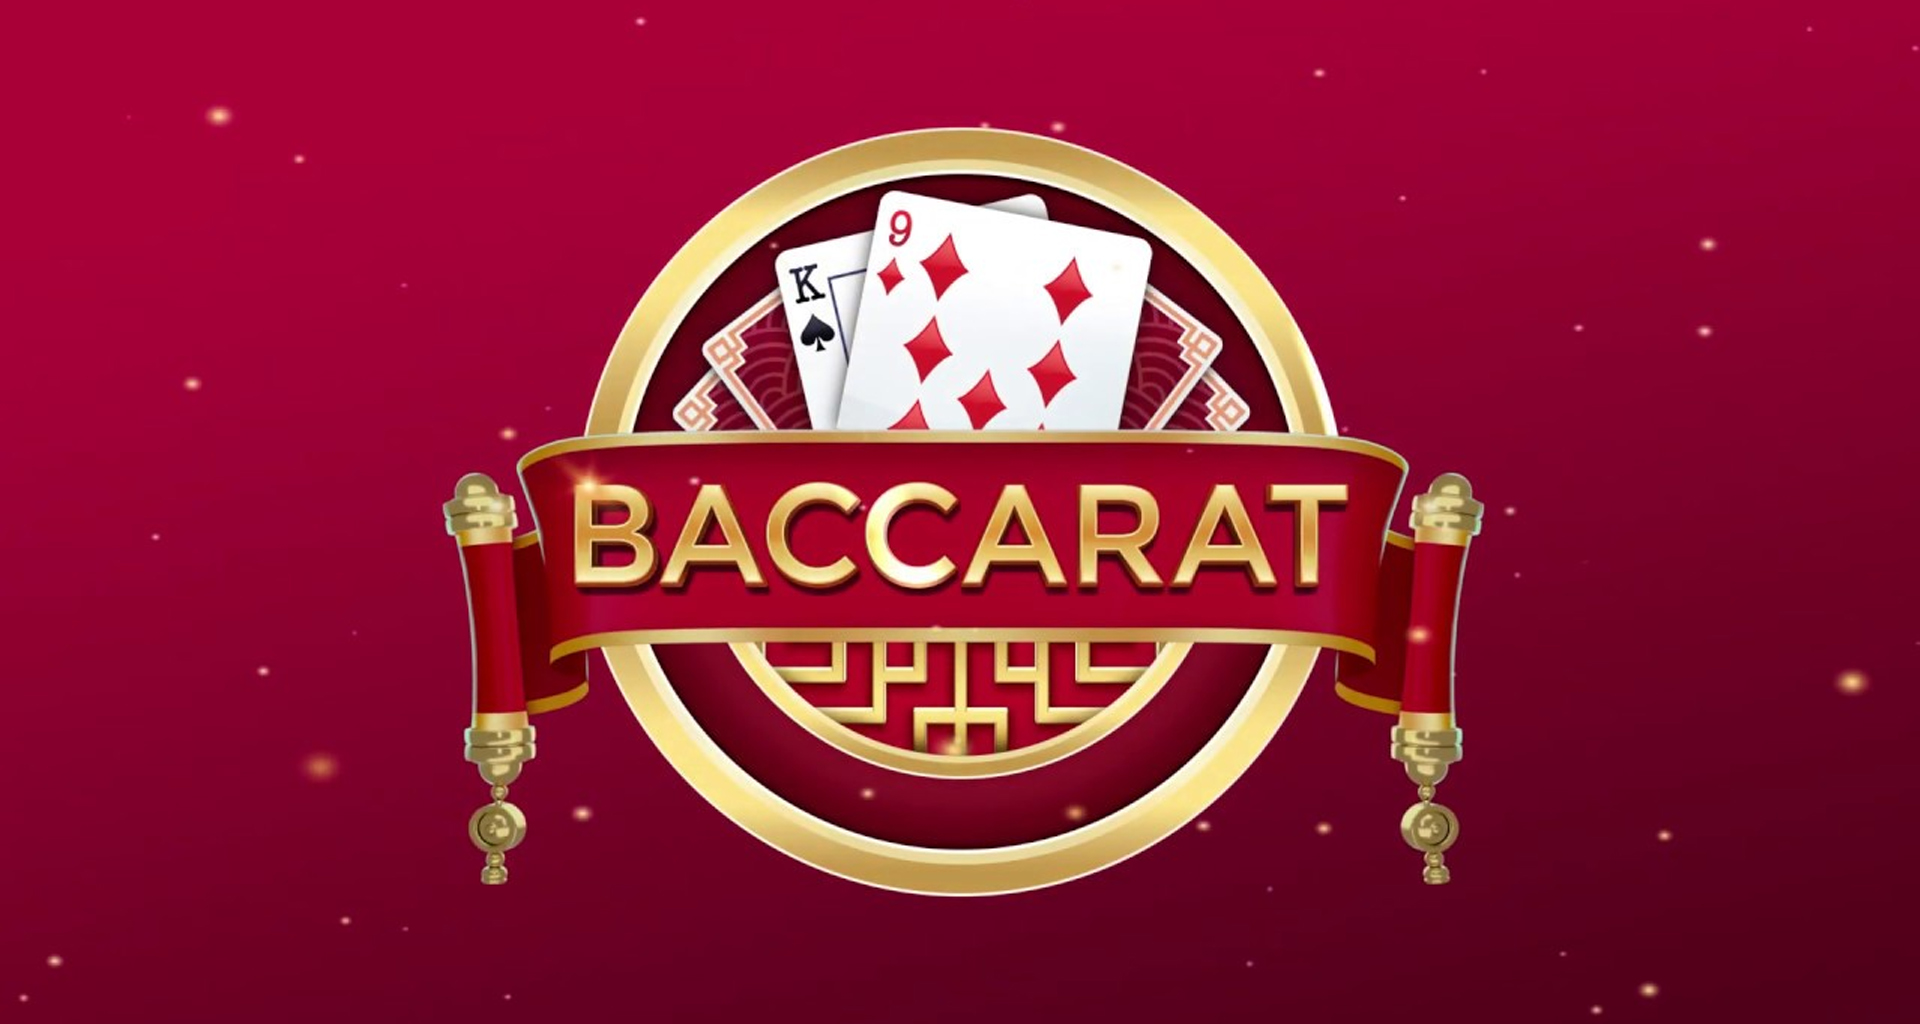 5 common beginner mistakes in Baccarat and how to avoid them